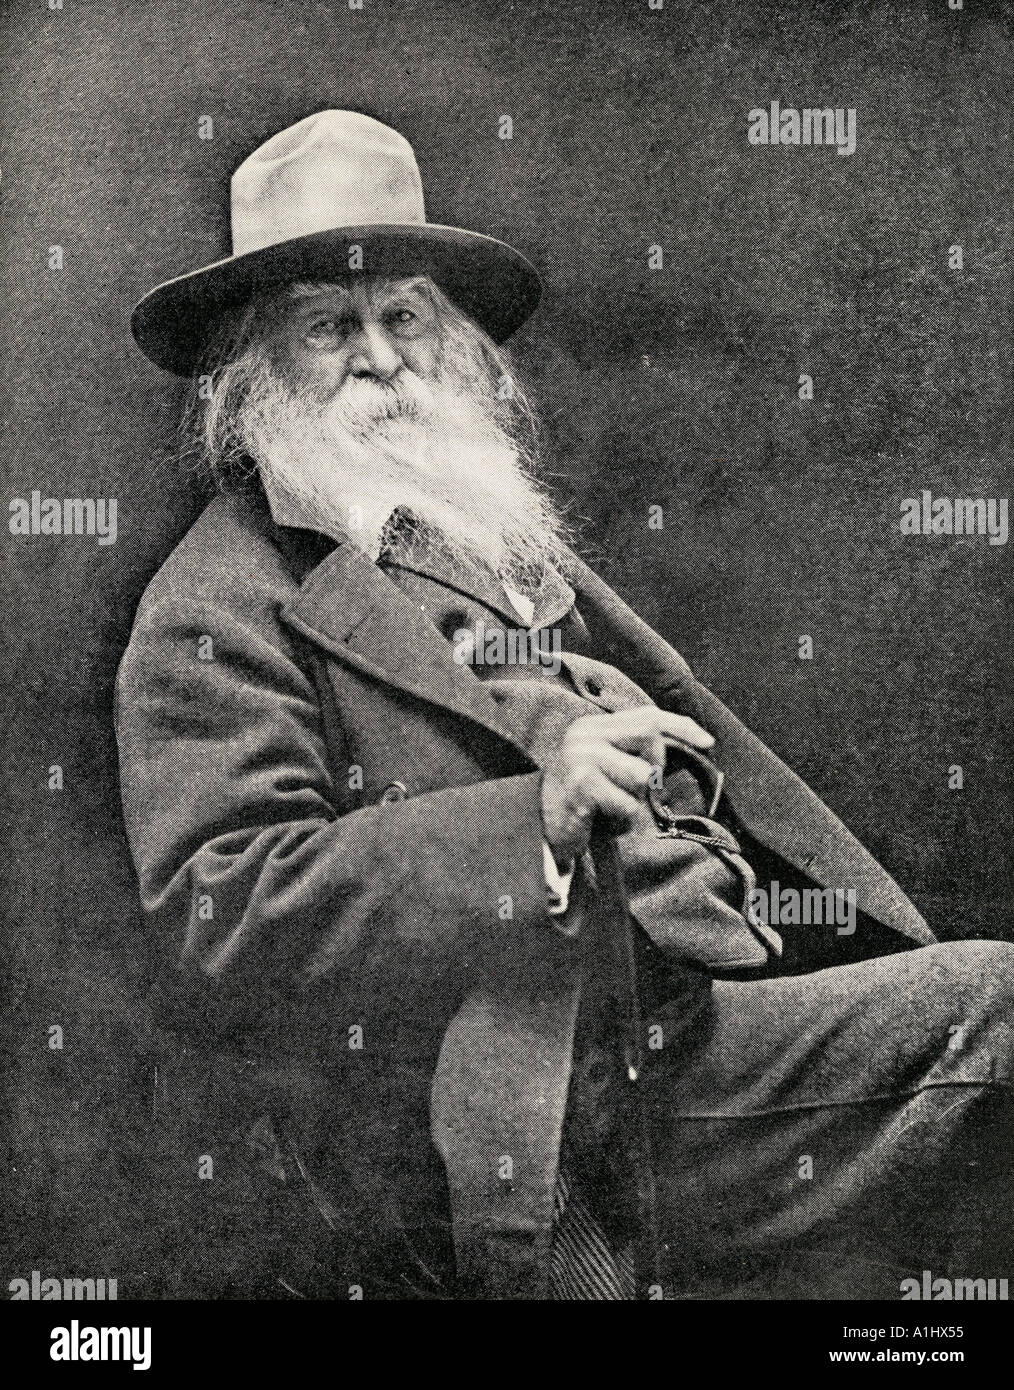 Walt Whitman, 1819 - 1892. Le poète américain Photo Stock